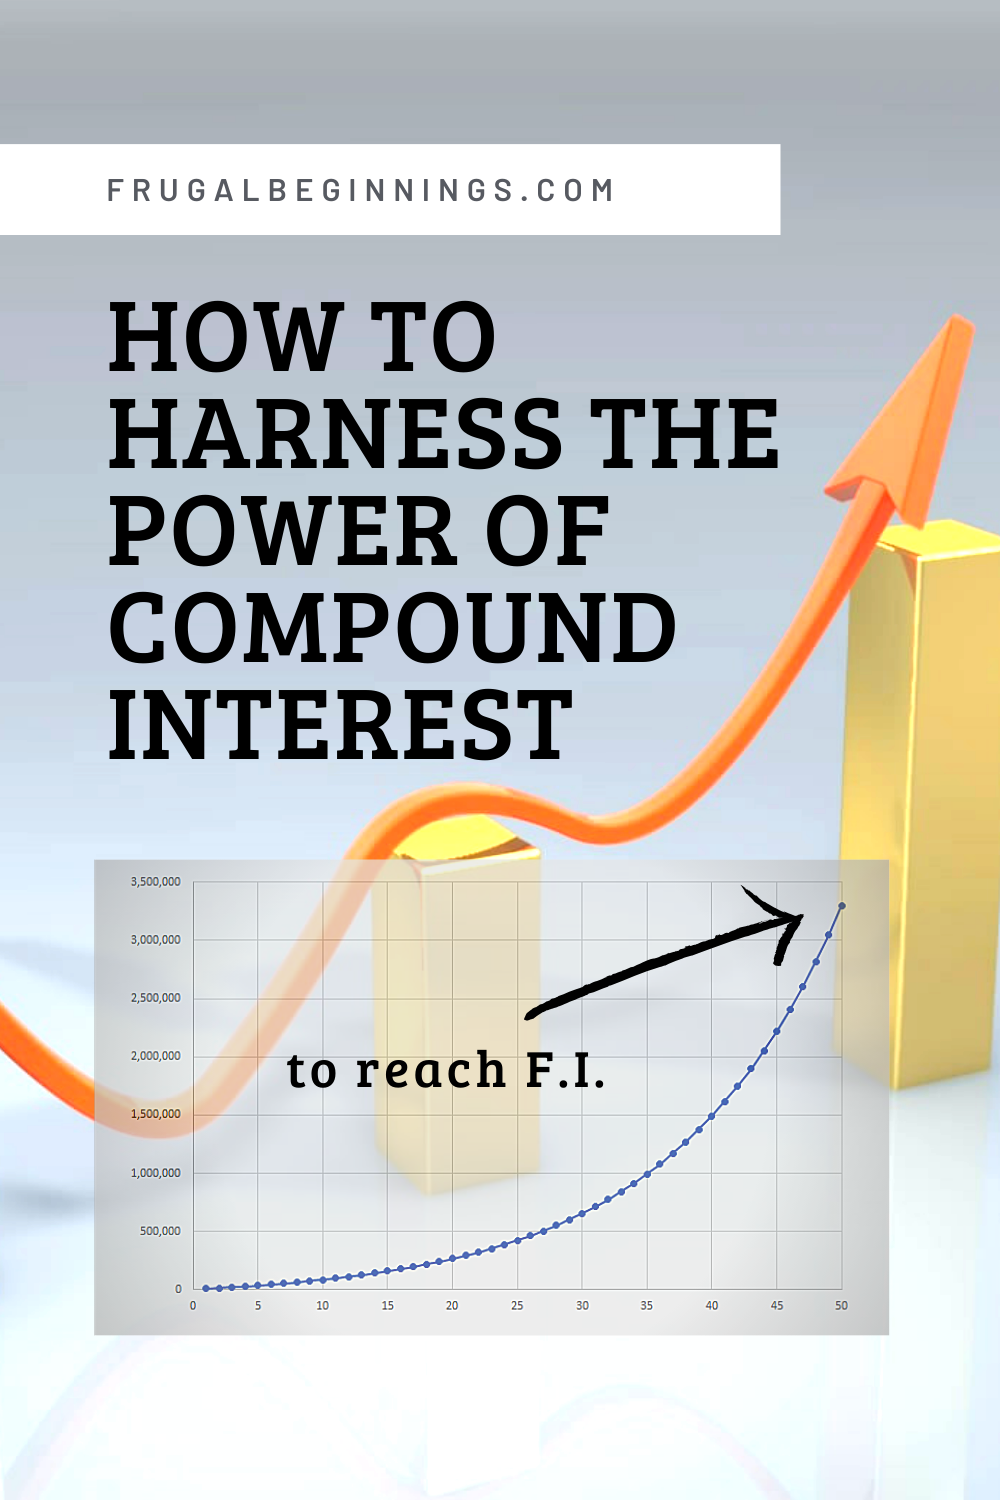 How To Harness The Power Of Compound Interest In 2020 Compound Interest Compounds Power